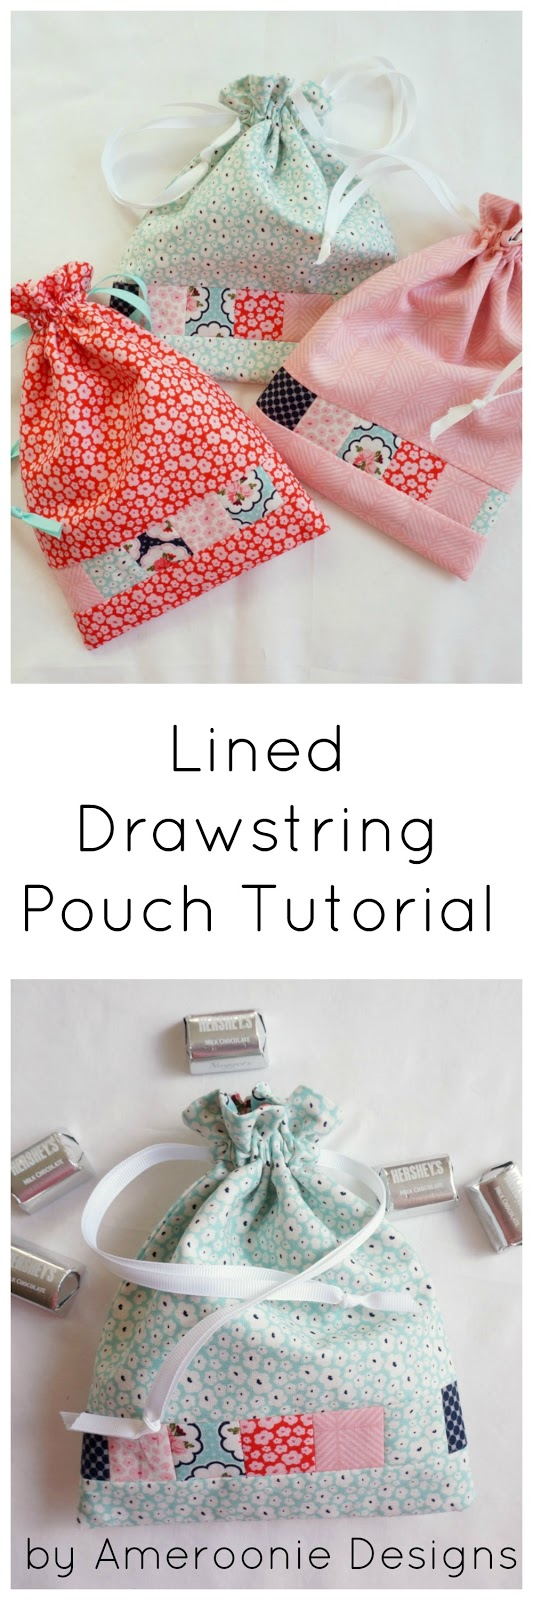 Ameroonie designs posy garden lined drawstring bag tutorial for Drawstring jewelry bag pattern